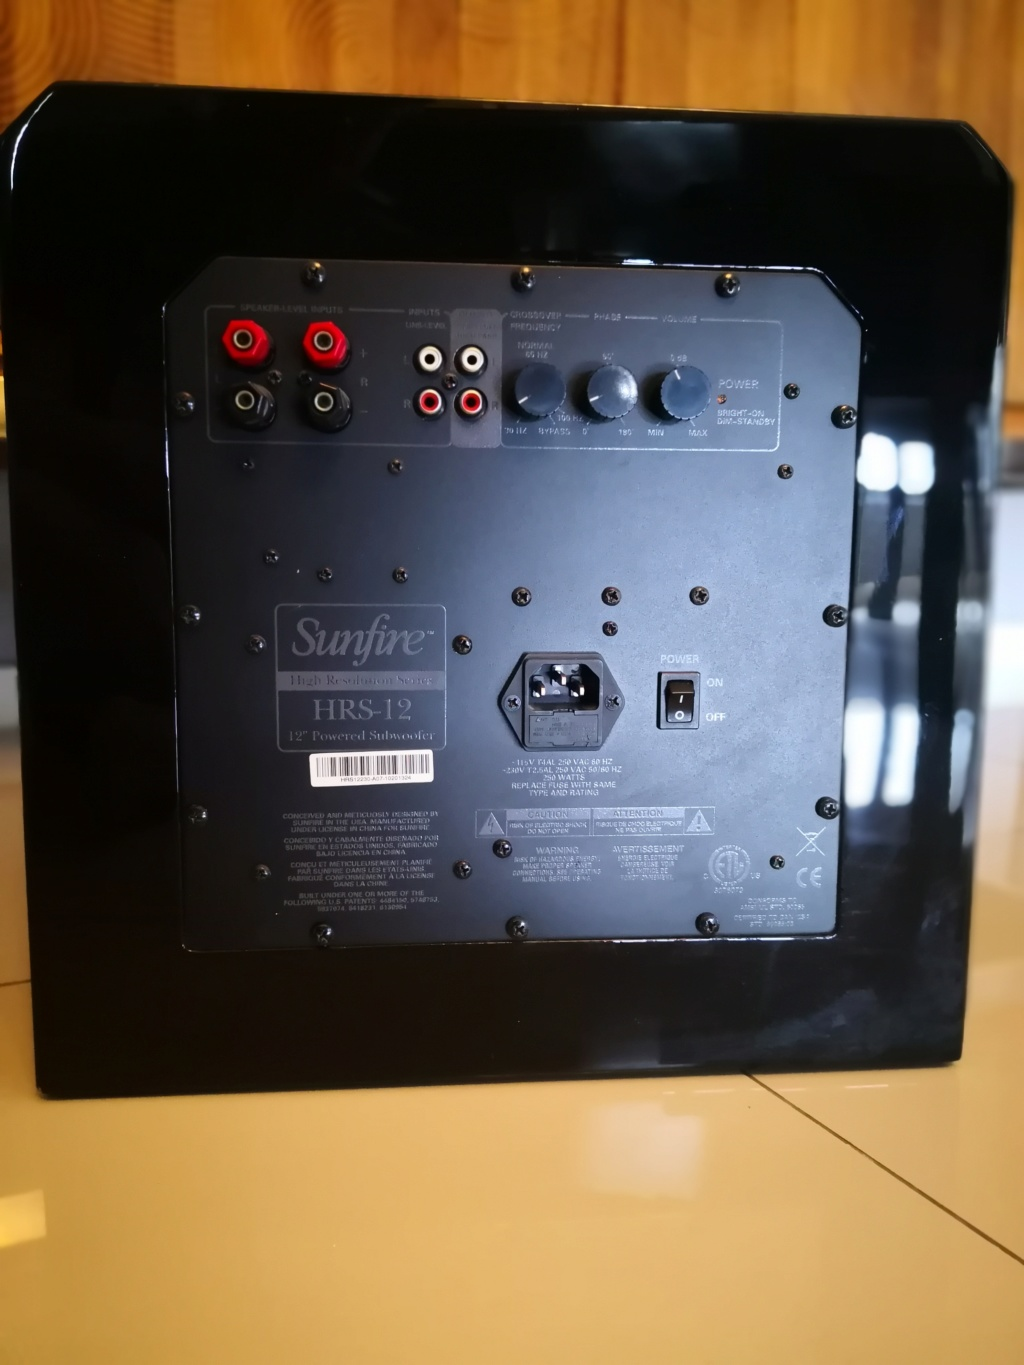 SOLD Sunfire HRS-12 Powered Subwoofer (Used) Img_2055